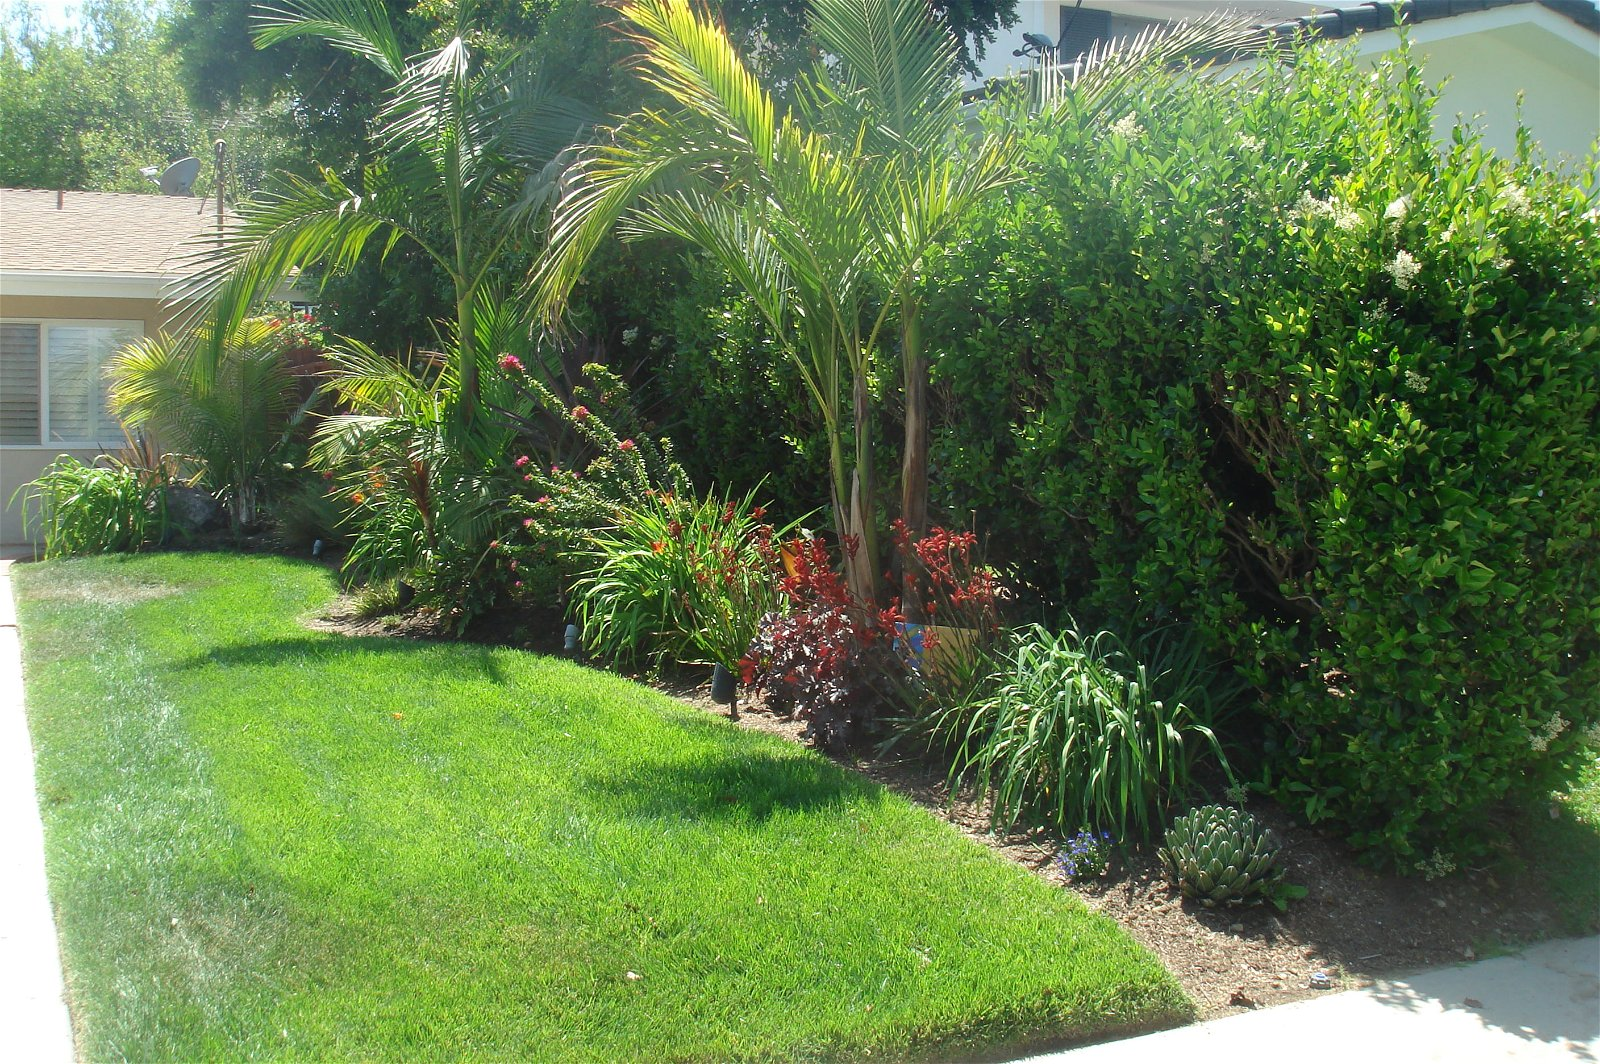 22.SIMPHOME.COM tropical landscaping ideas for front yard small backyard landscape